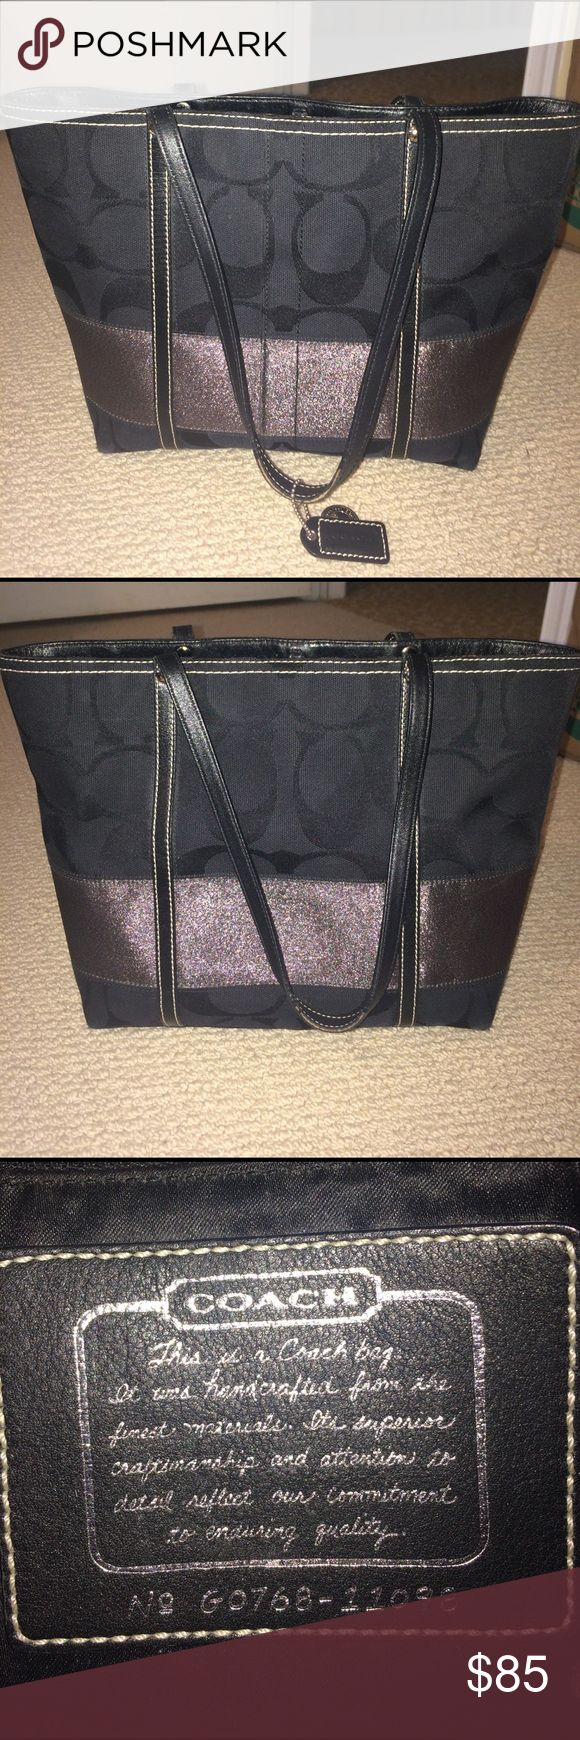 Black and silver Coach tote Black Coach bag with silver accents. Great day bag. Over the shoulder bag. Coach Bags Shoulder Bags